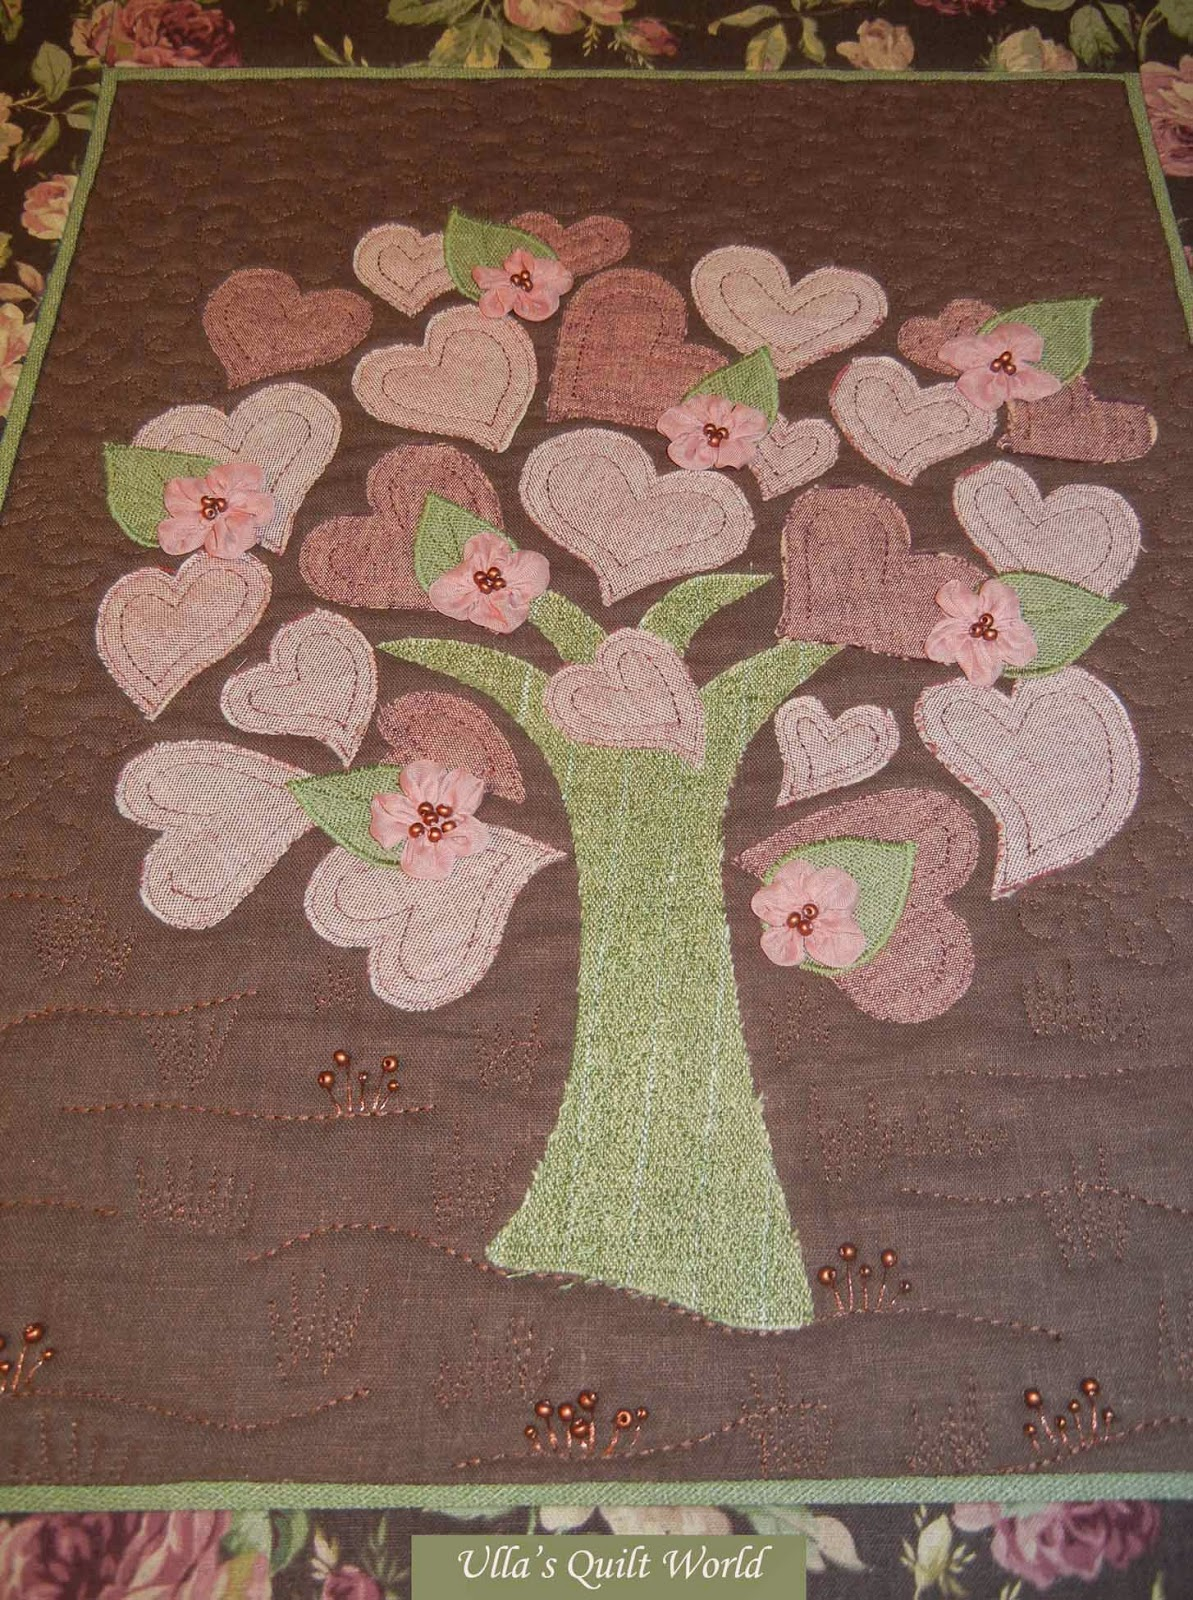 Wall Hanging Quilts ulla's quilt world: quilted tree wall hanging with hearts